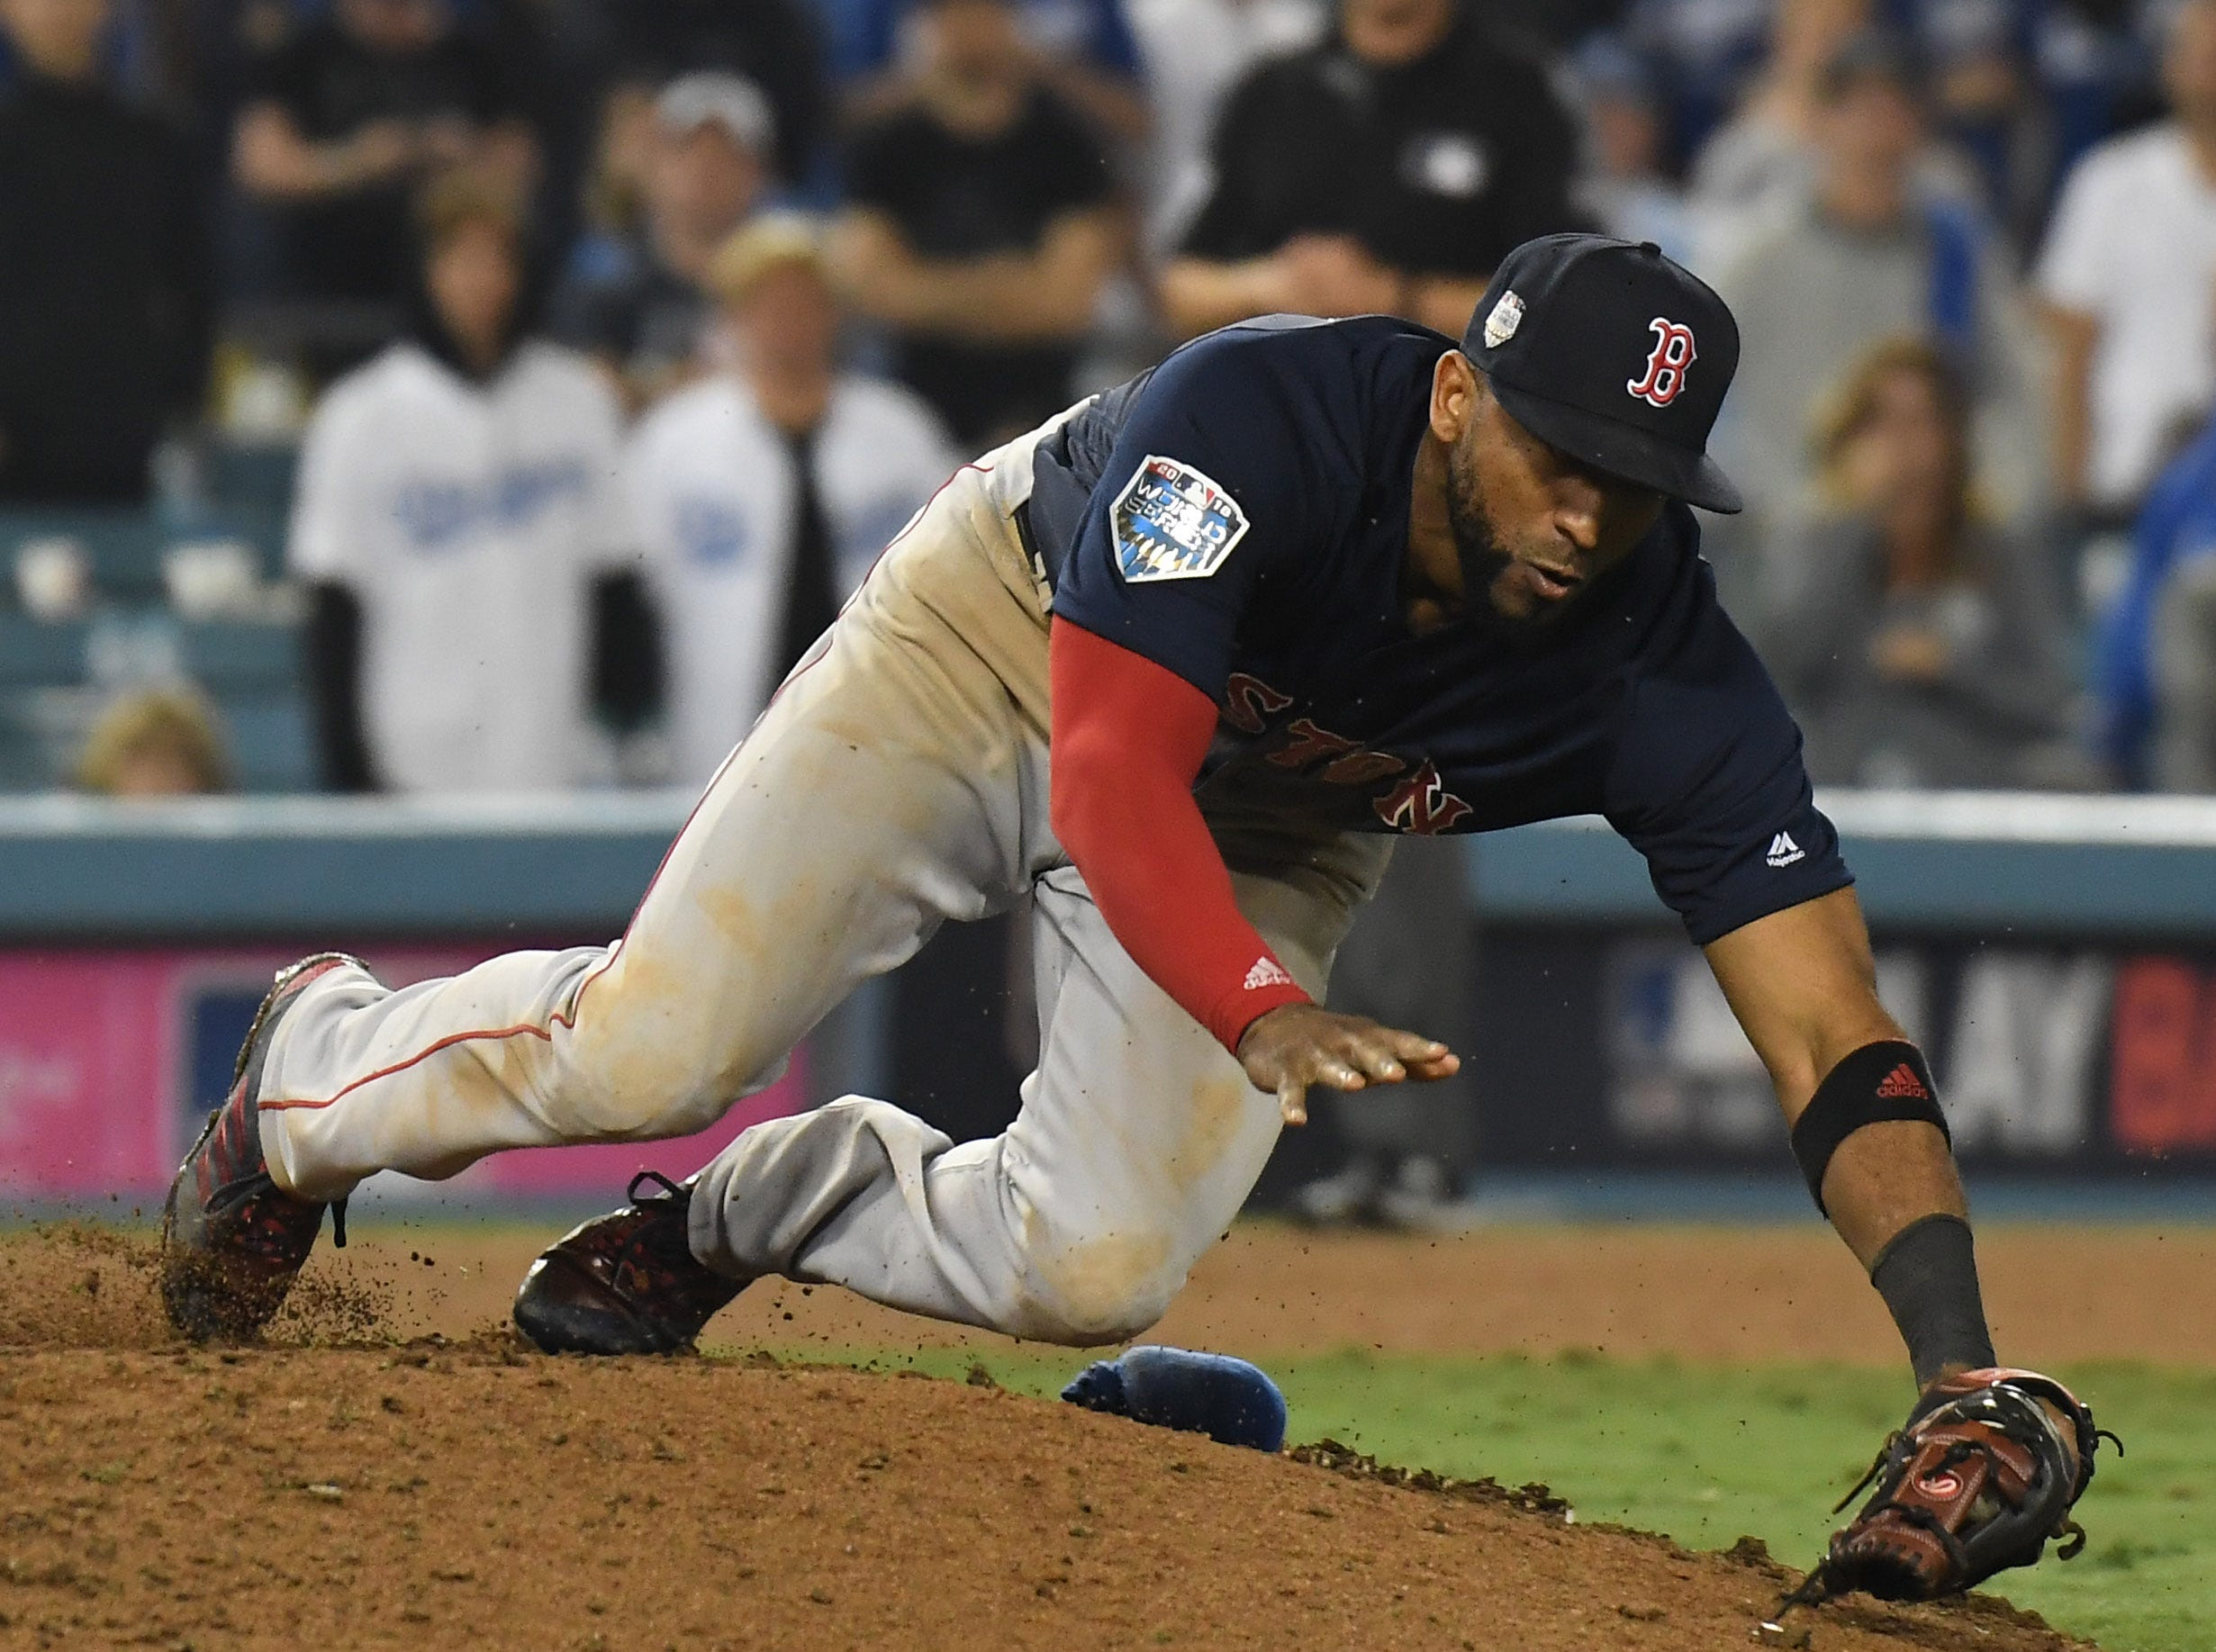 Game 3 at Dodger Stadium: Eduardo Nunez falls over the mound while making a catch on a pop up in the 16th inning.